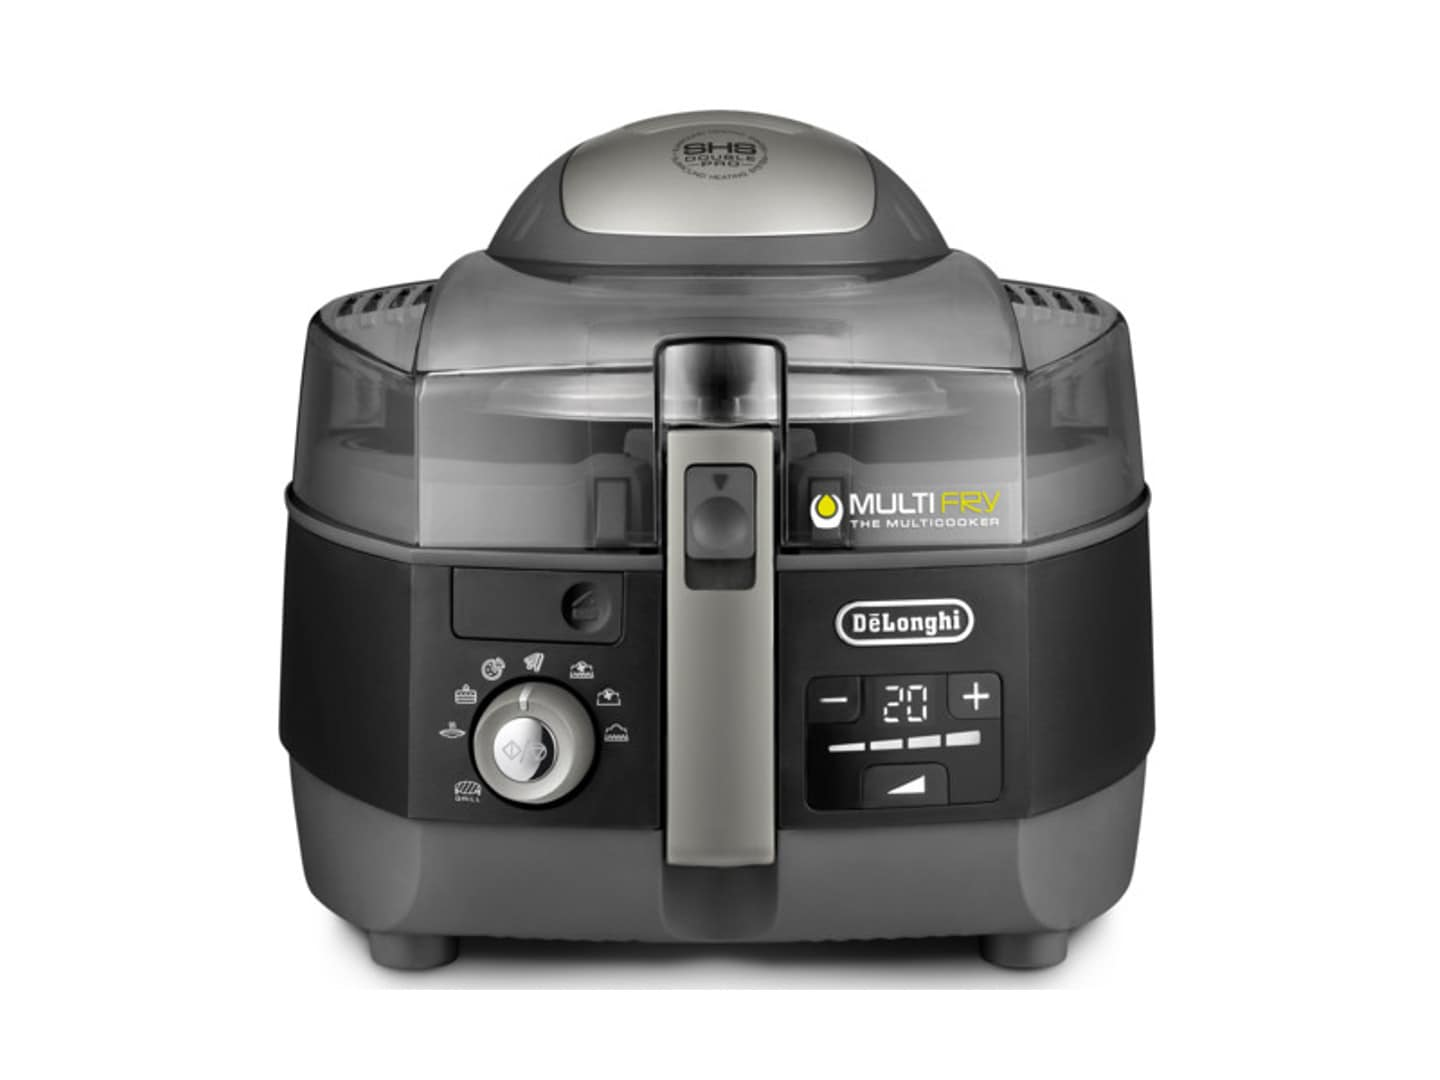 Heissluft-Fritteuse MultiFry EXTRA CHEF PLUS FH 1396/1.BK